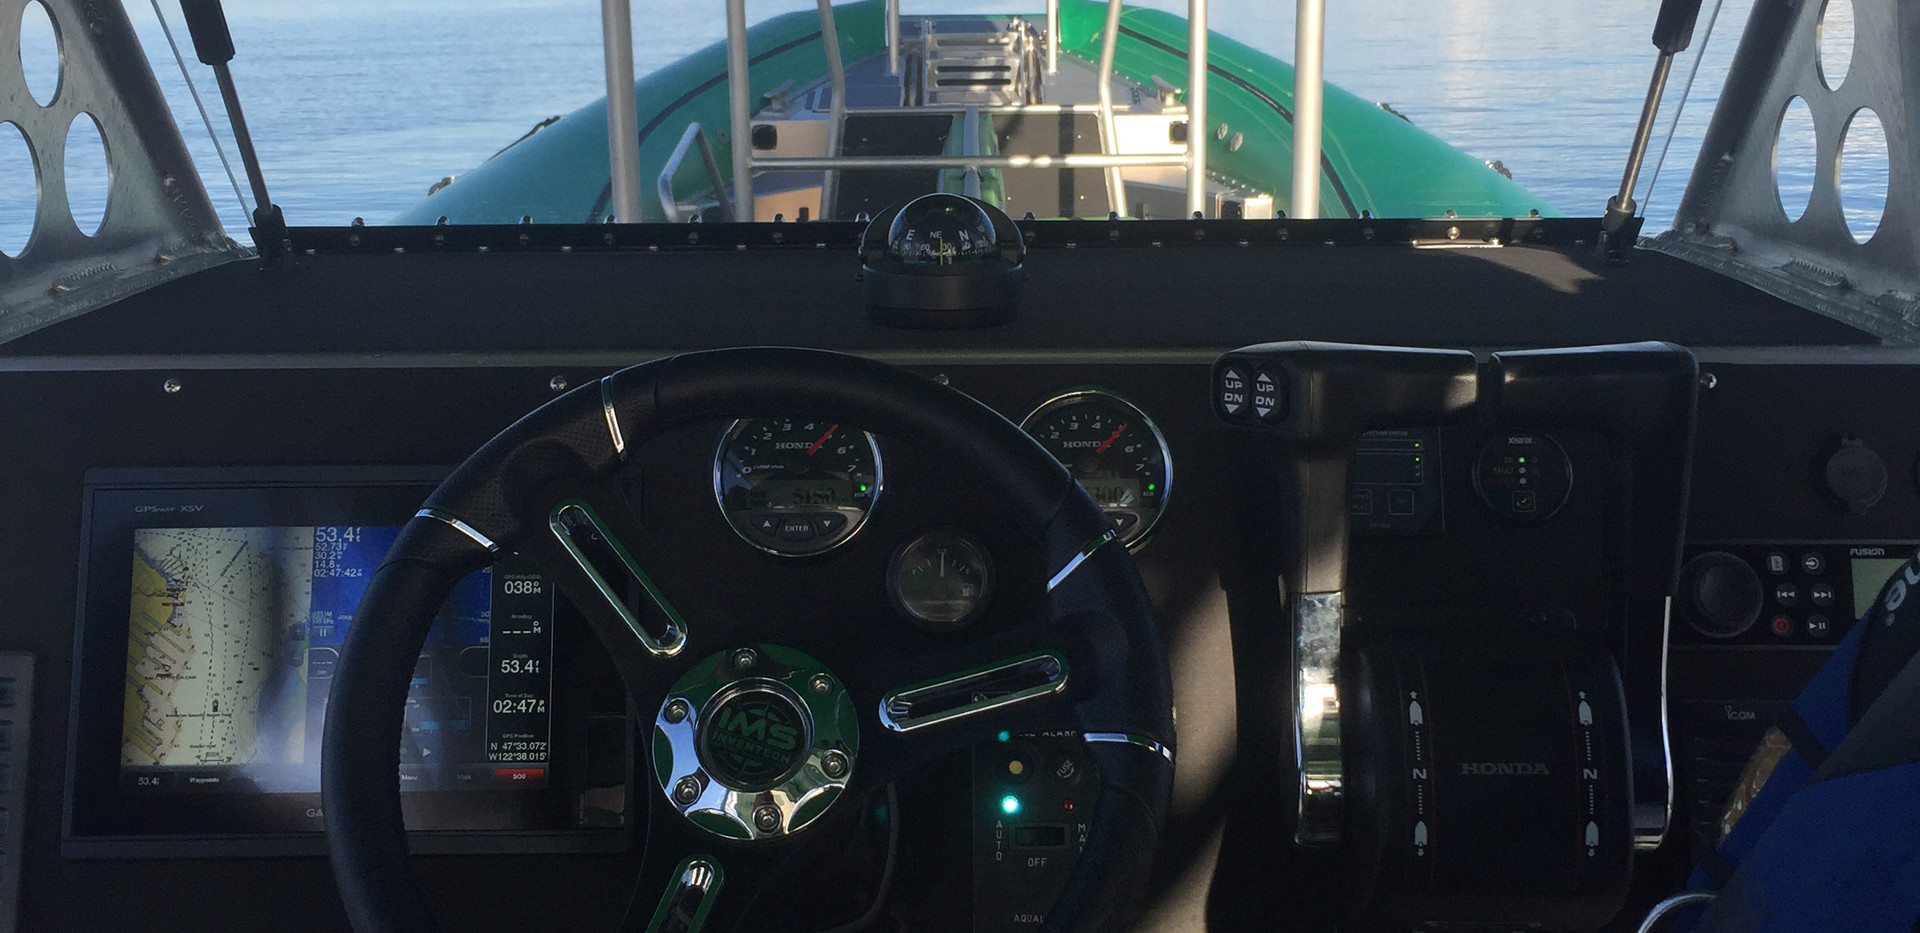 From the Helm